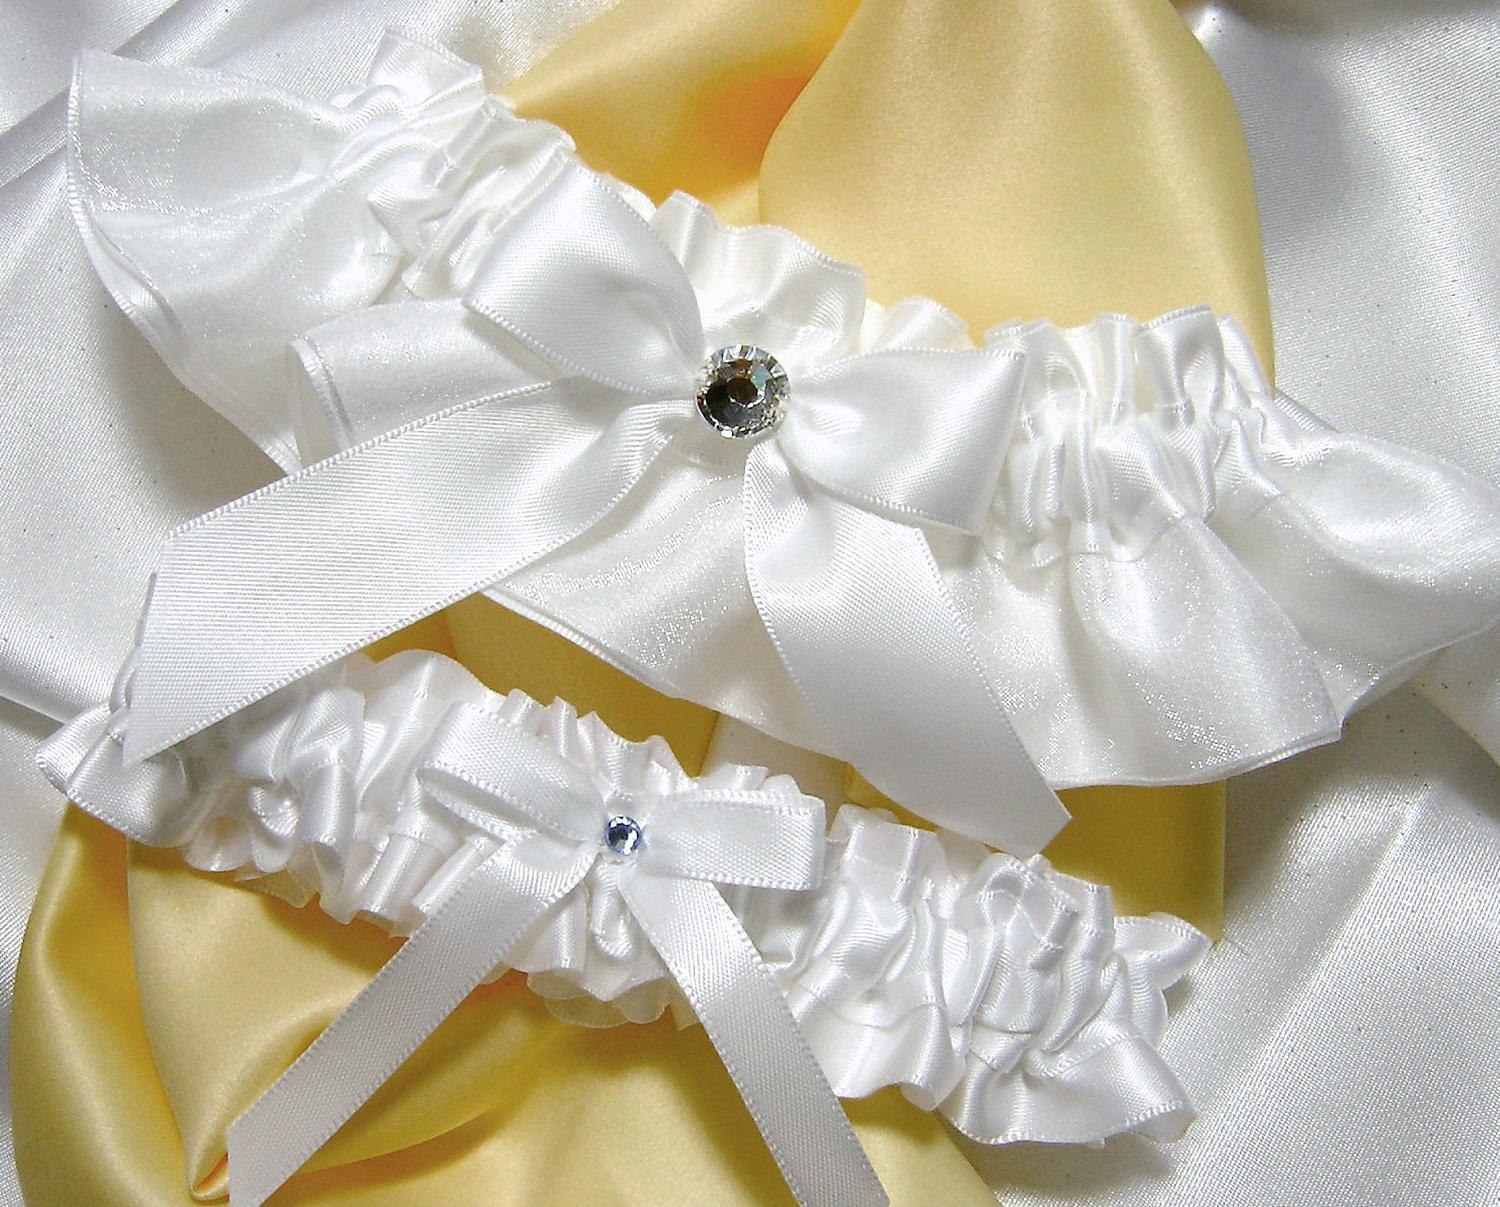 White Satin Bridal Garter Set w  Real Swarovski Crystal Embellishment -Toss